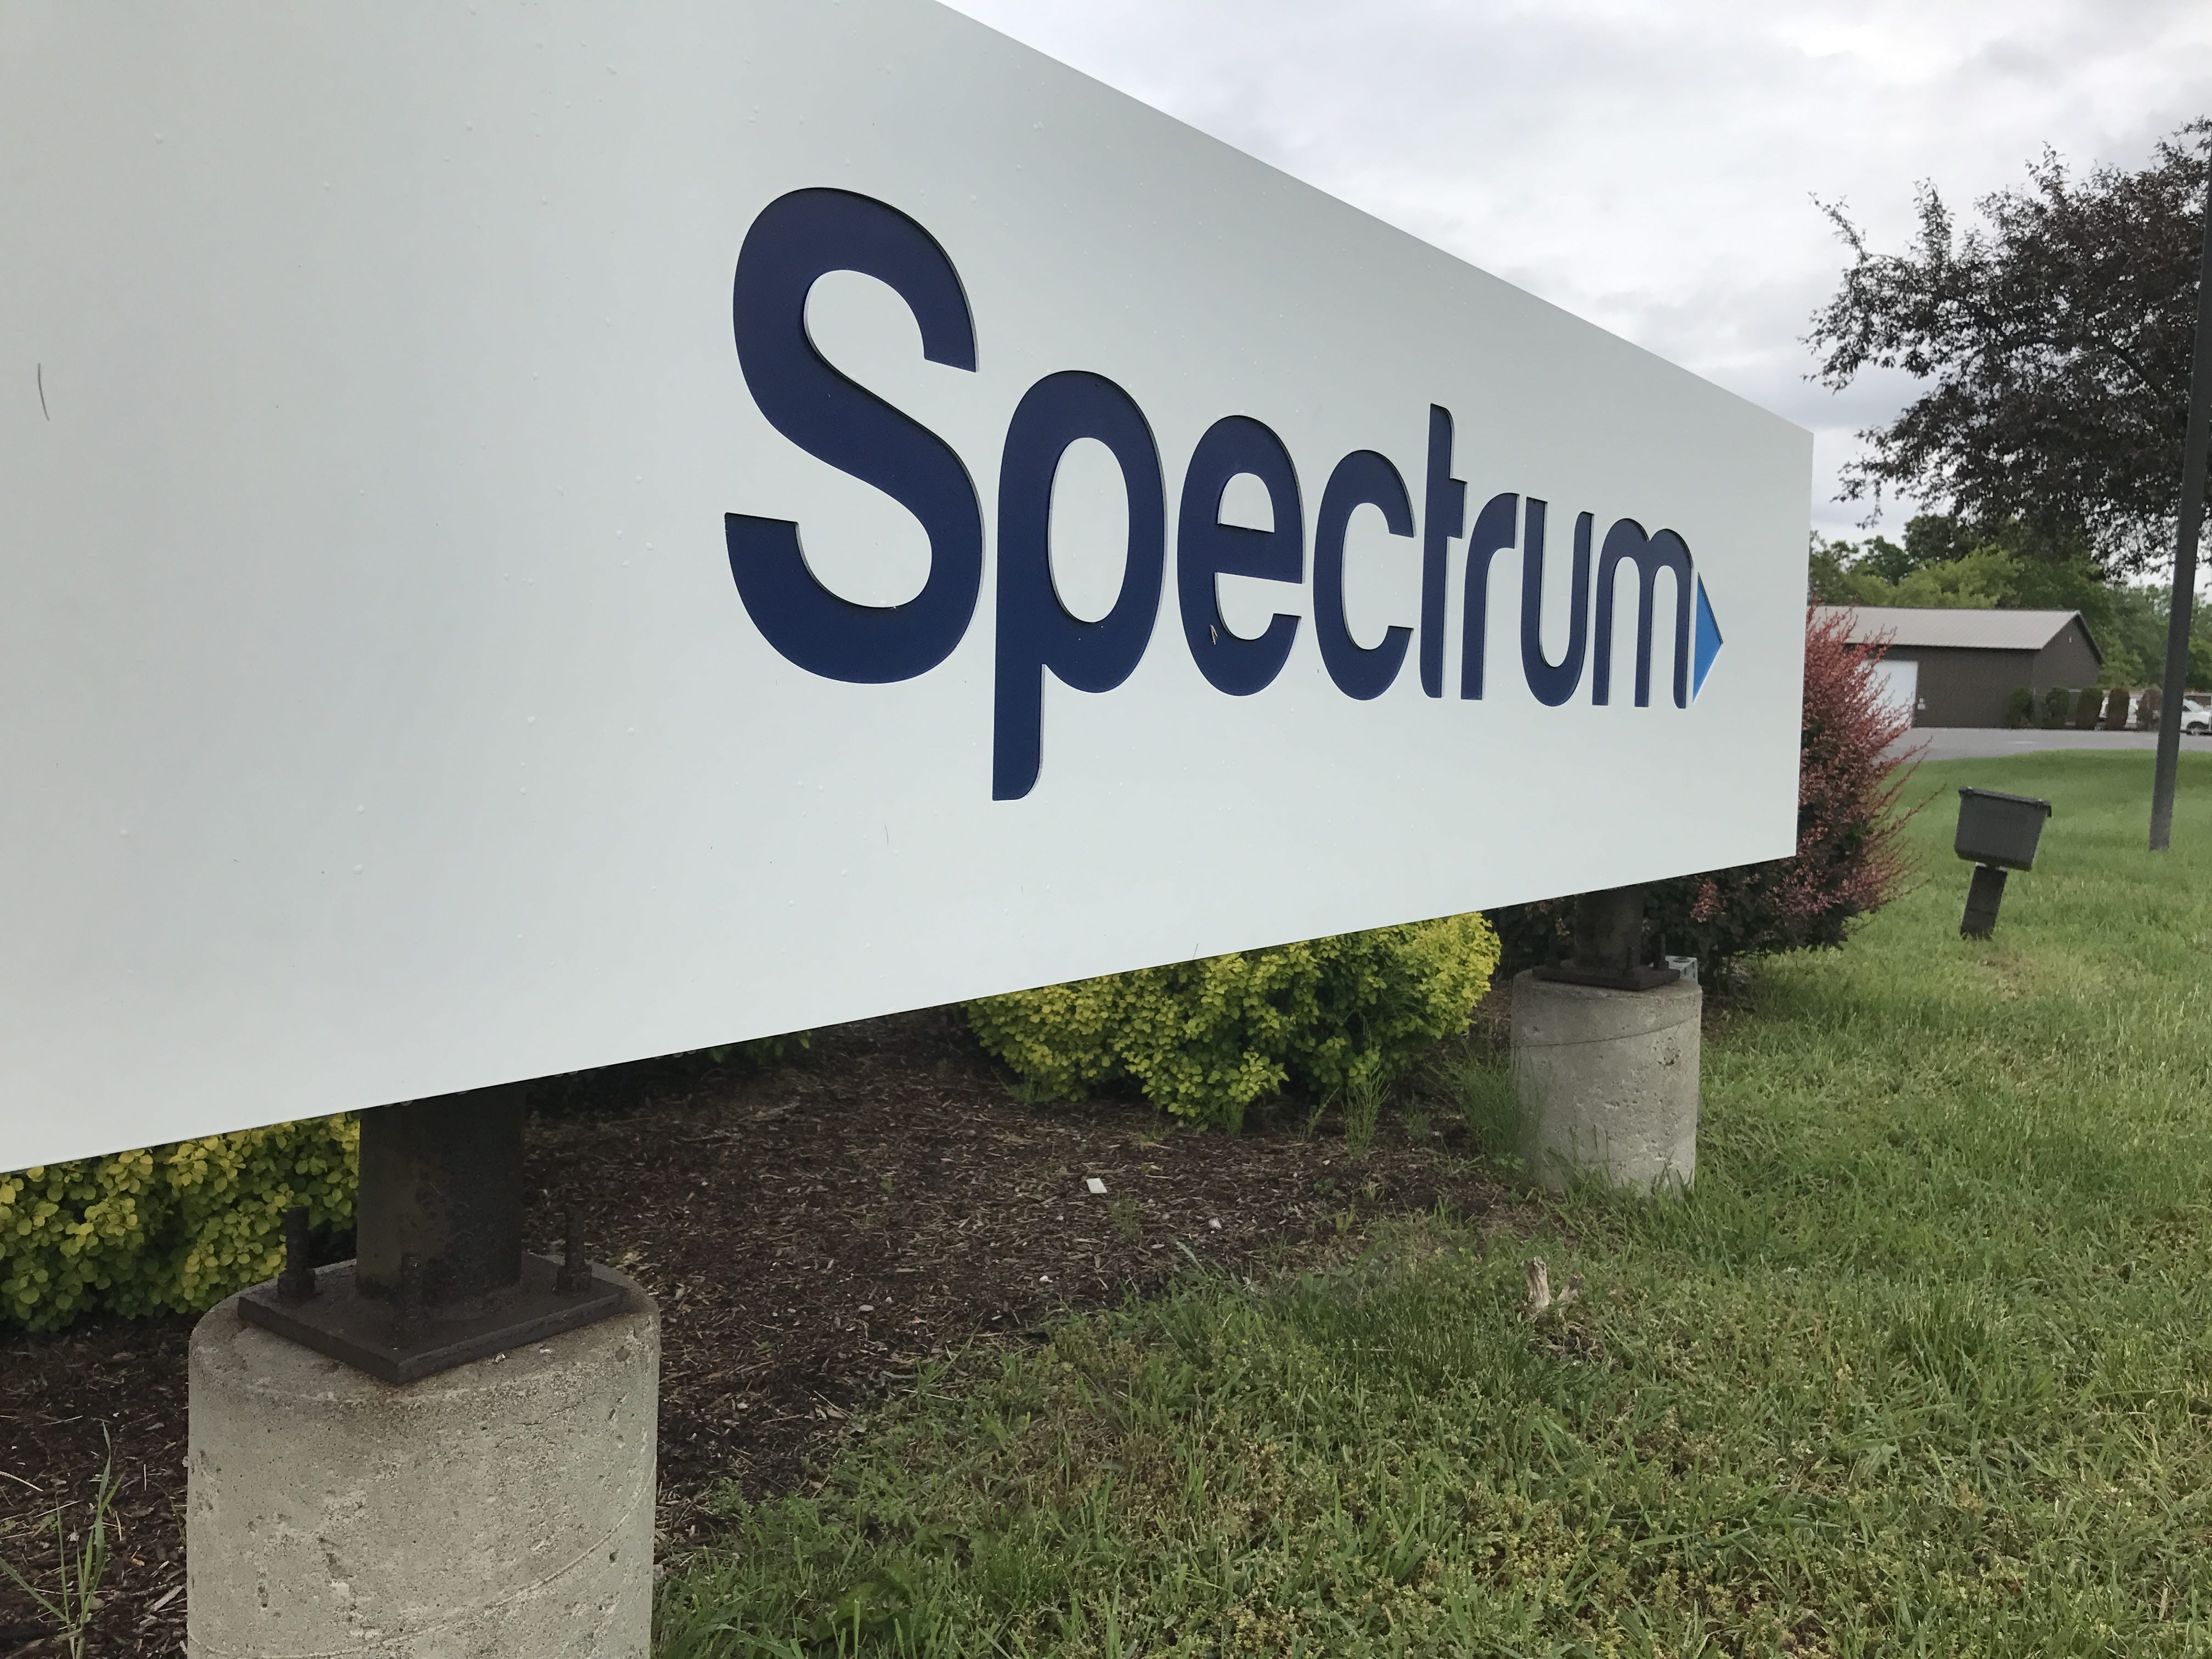 Spectrum Cable Nyc Pay Bill: Spectrum battles New York: What you should knowrh:democratandchronicle.com,Design